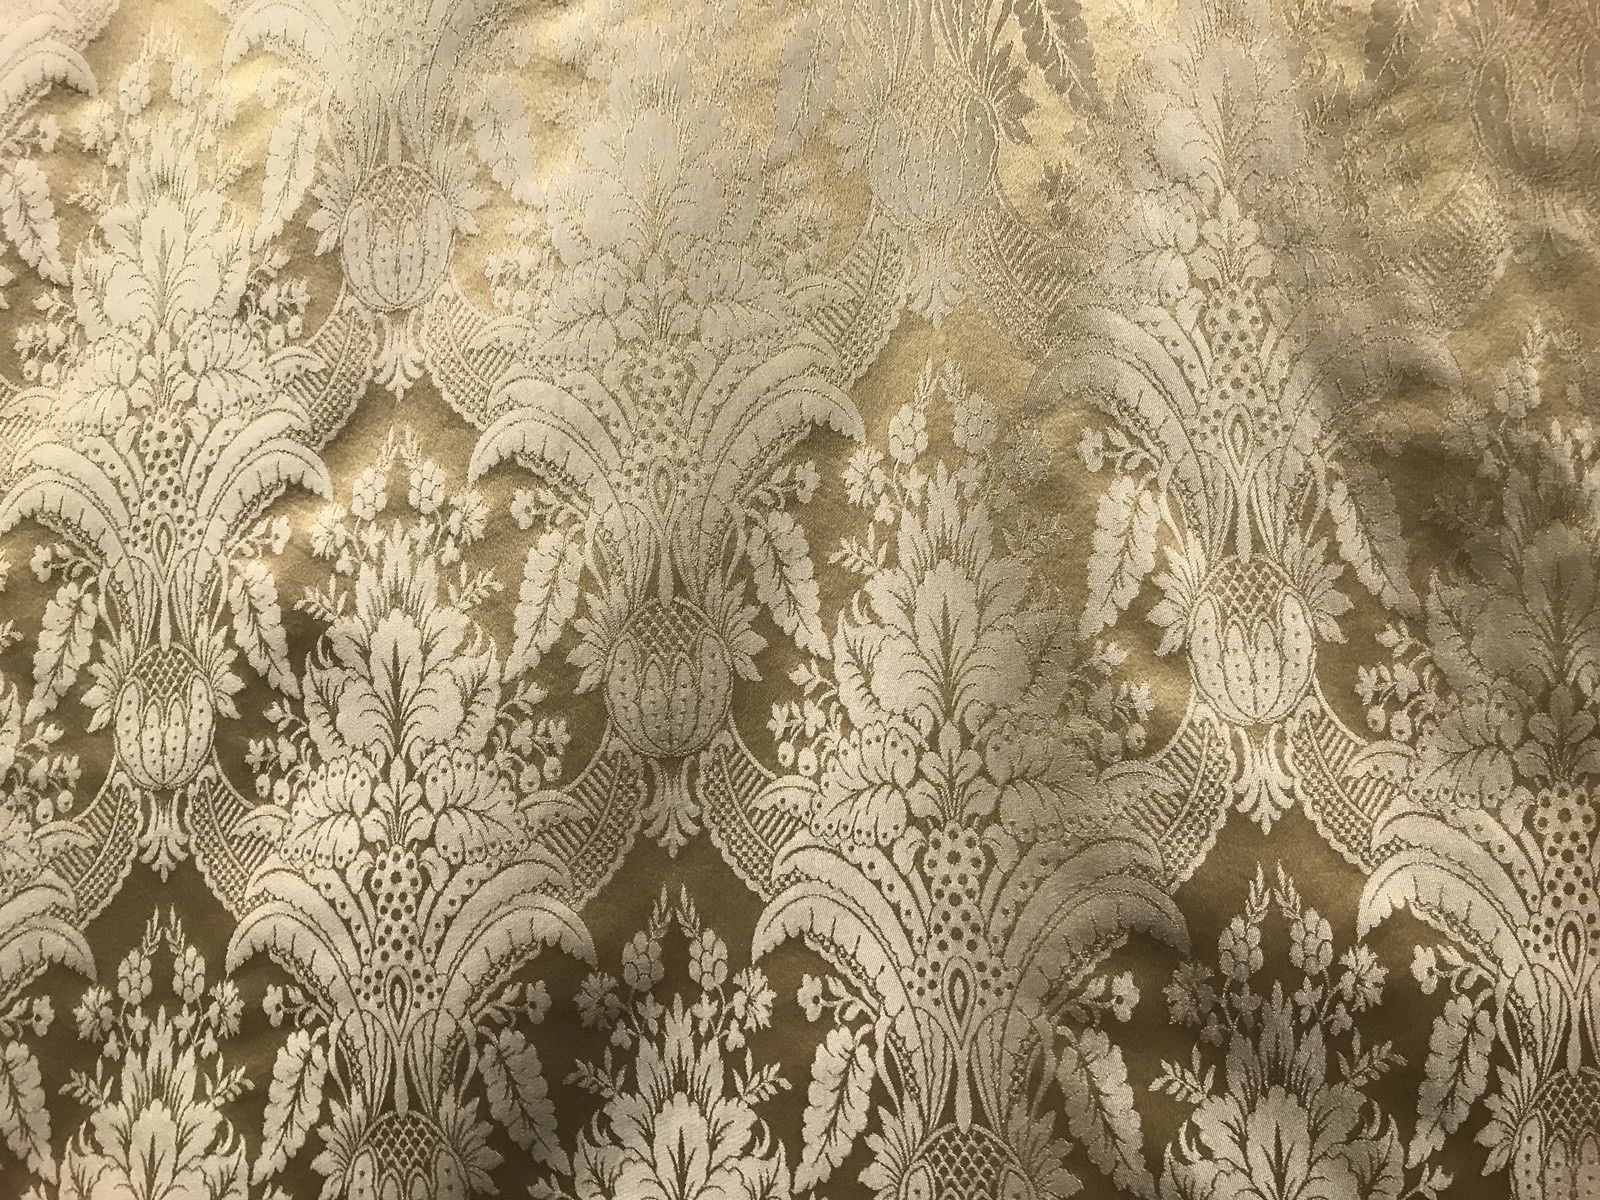 NEW! SALE! Designer Damask Satin Fabric- Antique Gold Beige - Upholstery Brocade - Fancy Styles Fabric Boutique